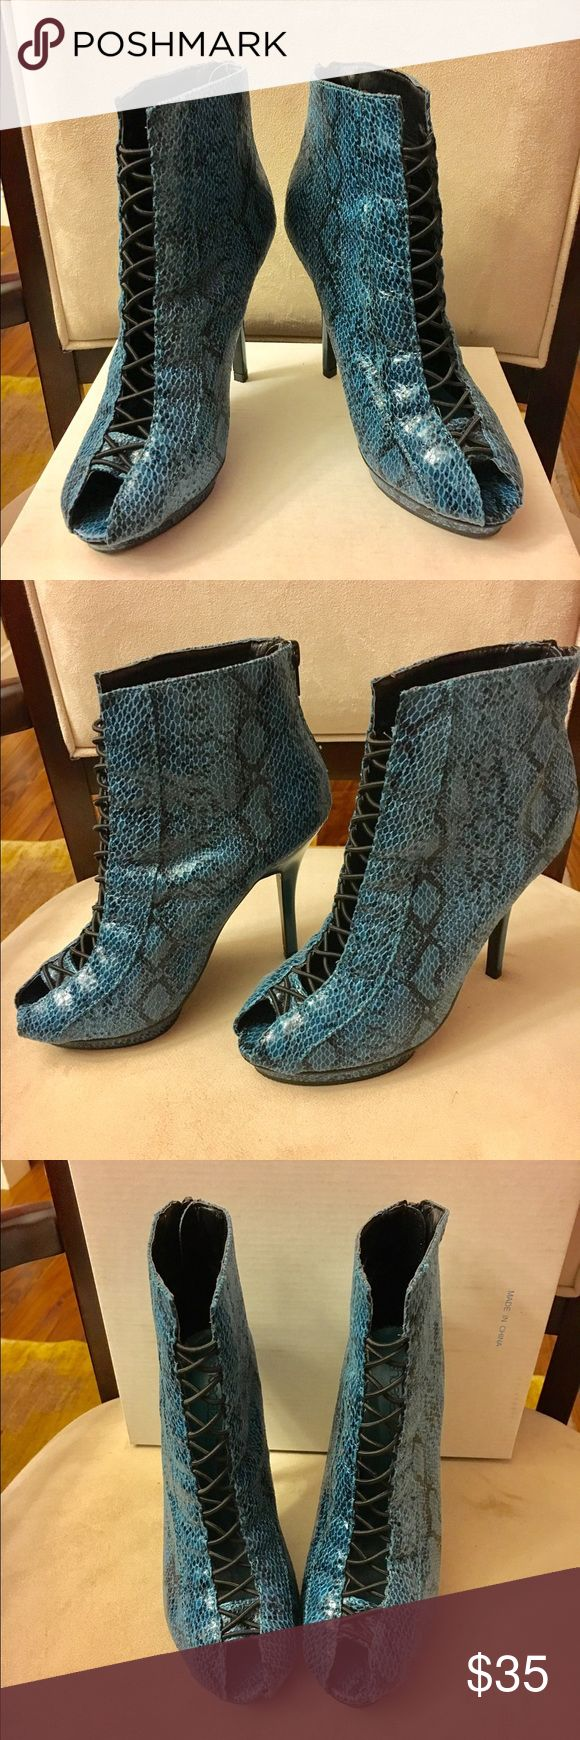 "NWOT Shoe Dazzle Snakeskin Lace Ankle Boots Brand New. Never been worn Shoe Dazzle faux snake skin ankle boots.  You will look hot in these sleet looking ankle boots. Lace detail on the front.  Approximately 4.5"" heel. 1 inch platform.  Don't miss out on this one-of-a-kind shoe!! Shoe Dazzle Shoes Heeled Boots"